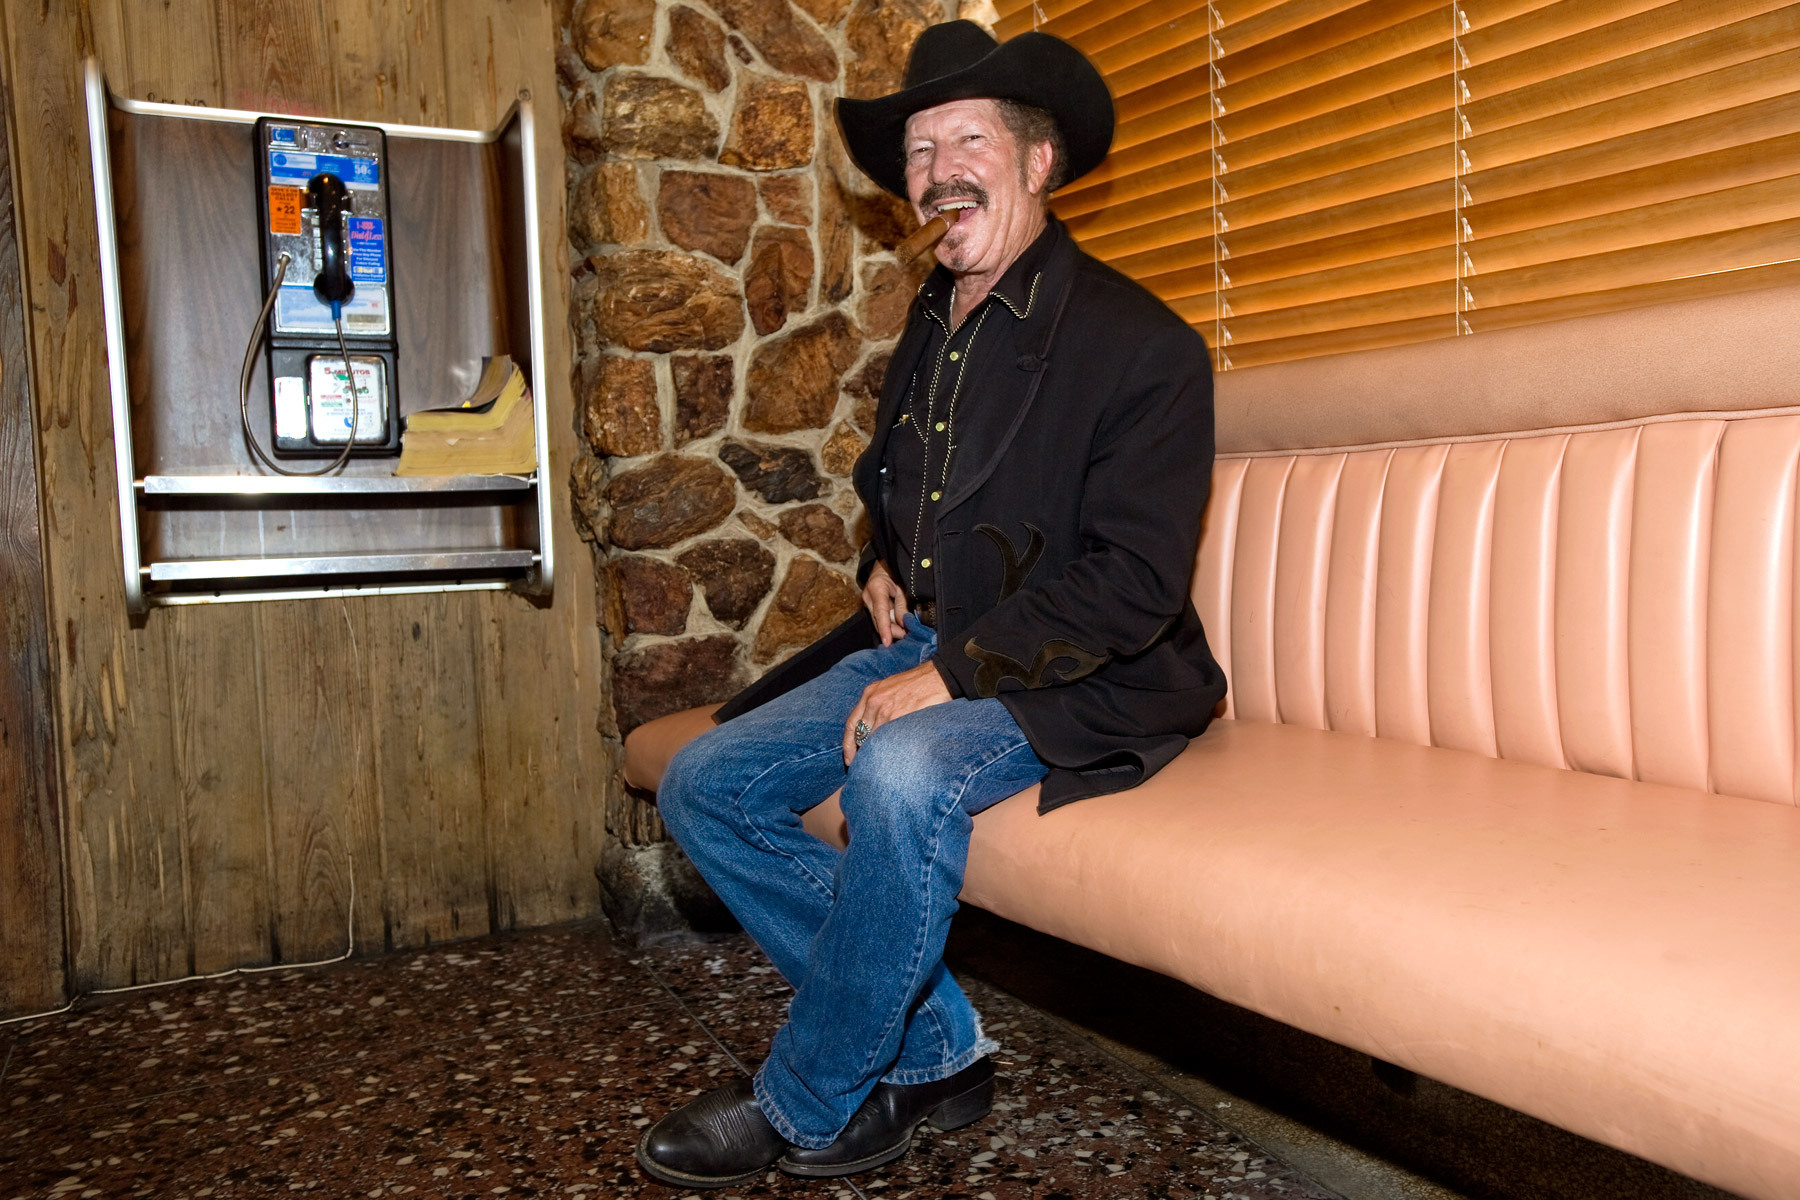 Kinky Friedman shot at Canter's Deli for Conqueroo